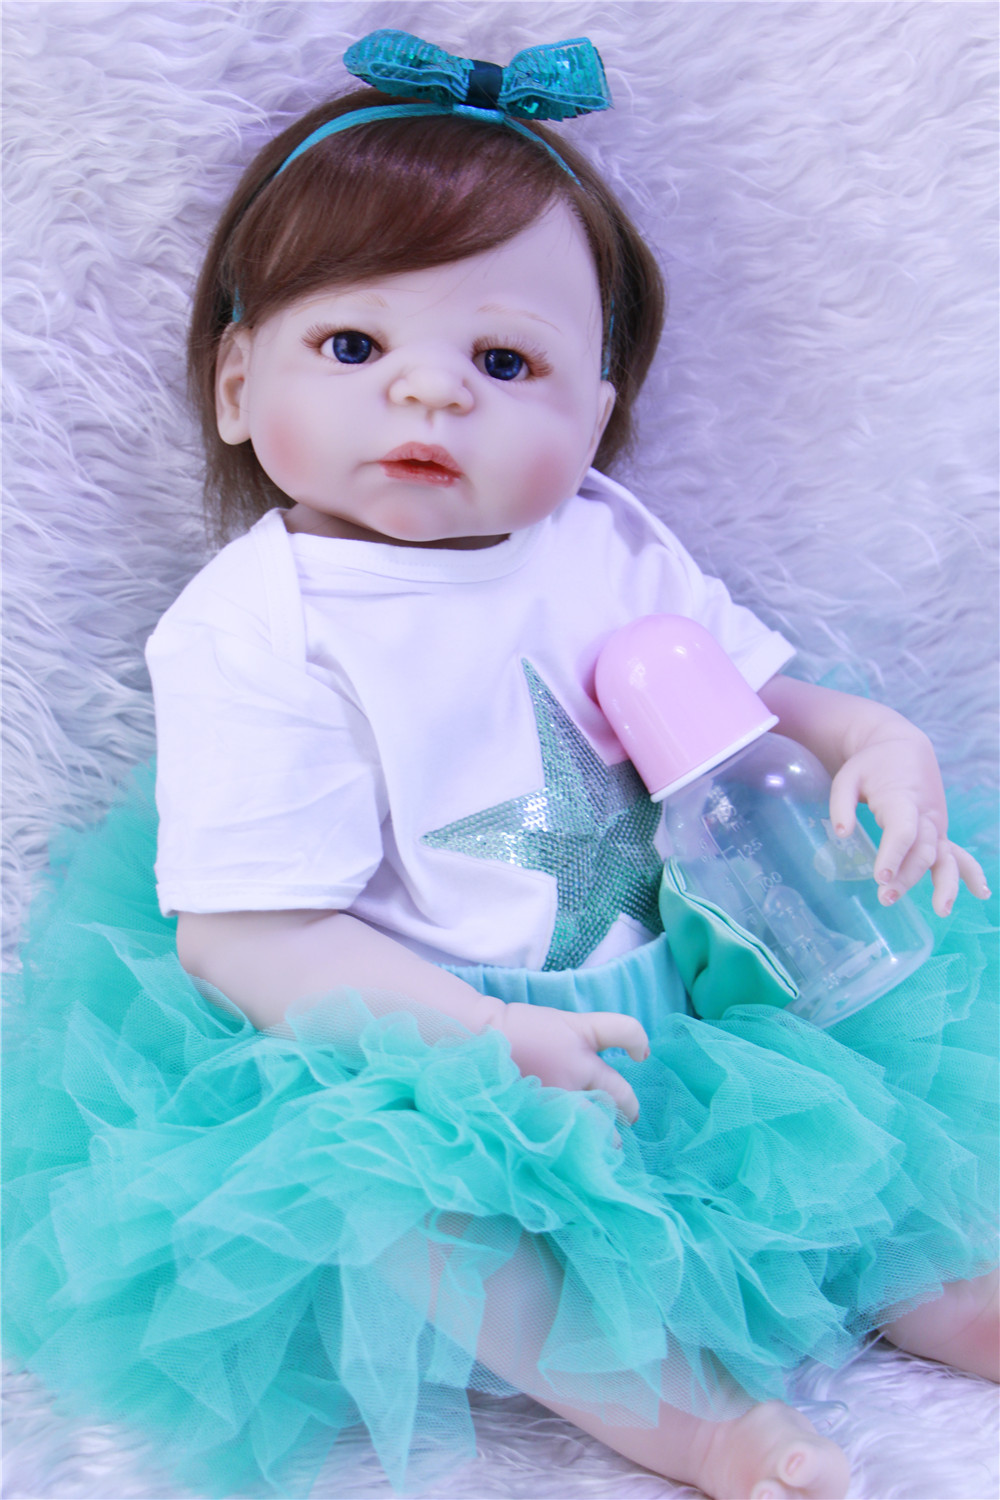 Girl bebe alive reborn 2357cm silicone reborn baby dolls toys for children gift rooted hair can bathe brinquedo meninaGirl bebe alive reborn 2357cm silicone reborn baby dolls toys for children gift rooted hair can bathe brinquedo menina